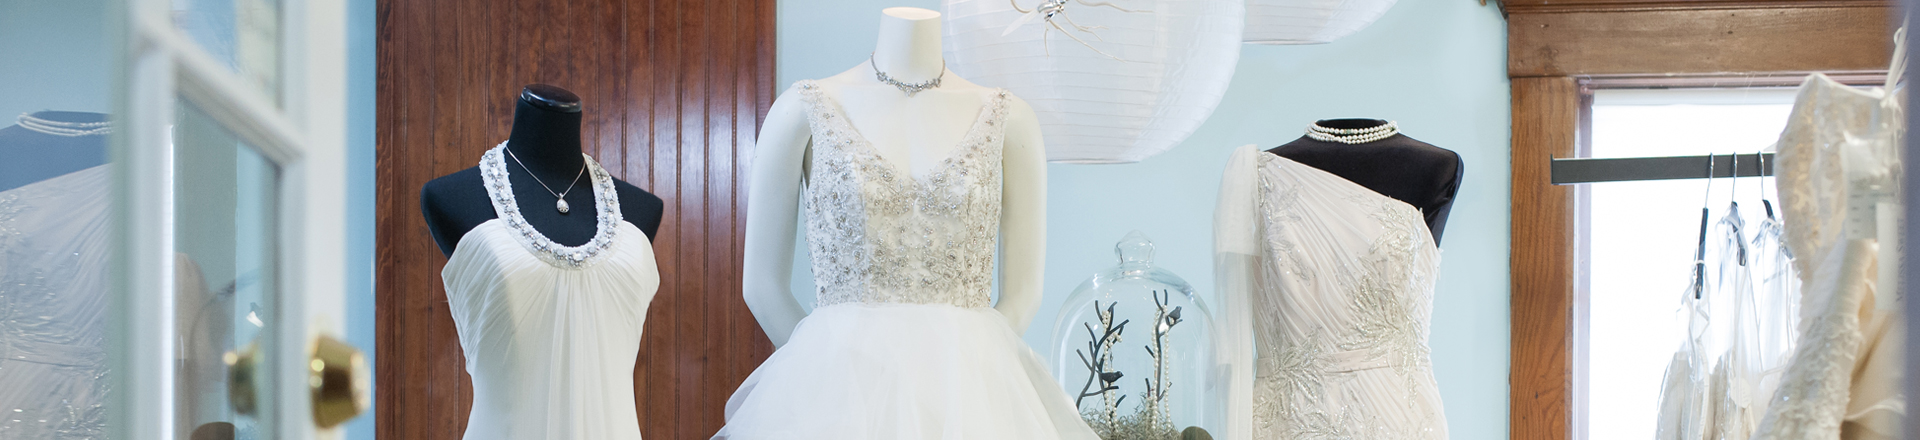 Cleaning & Preservation Services - Clever Bride Consignments